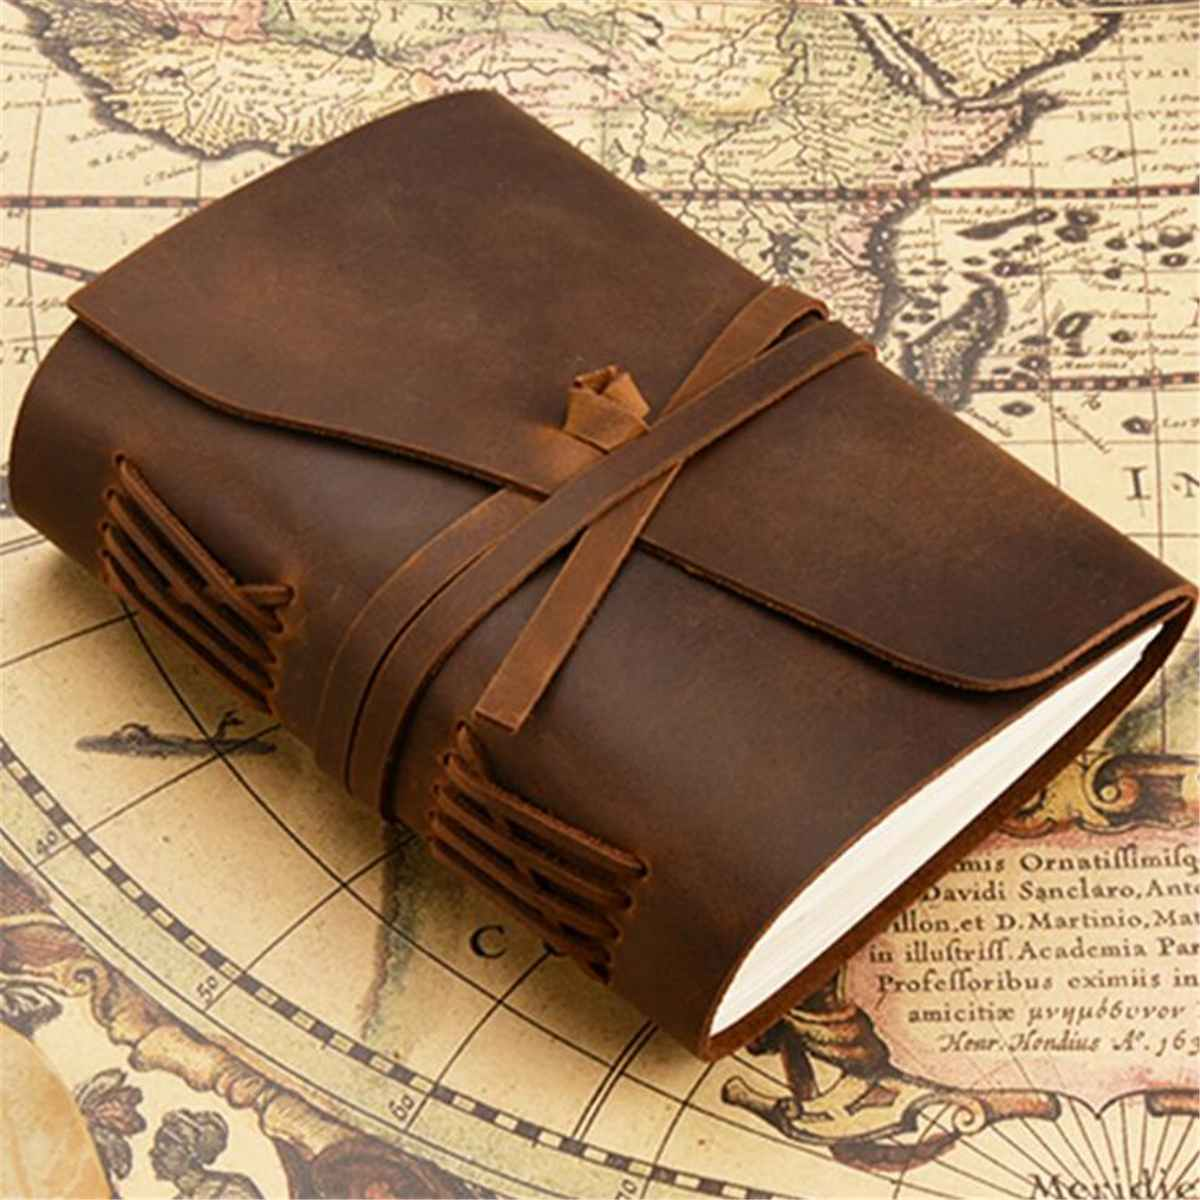 US $26 31 42% OFF|Genuine Leather Diary Write Notebook Retro Travel Journal  Travel Handmade Vintage Writing Paper Hard Cover Sketchbook School-in